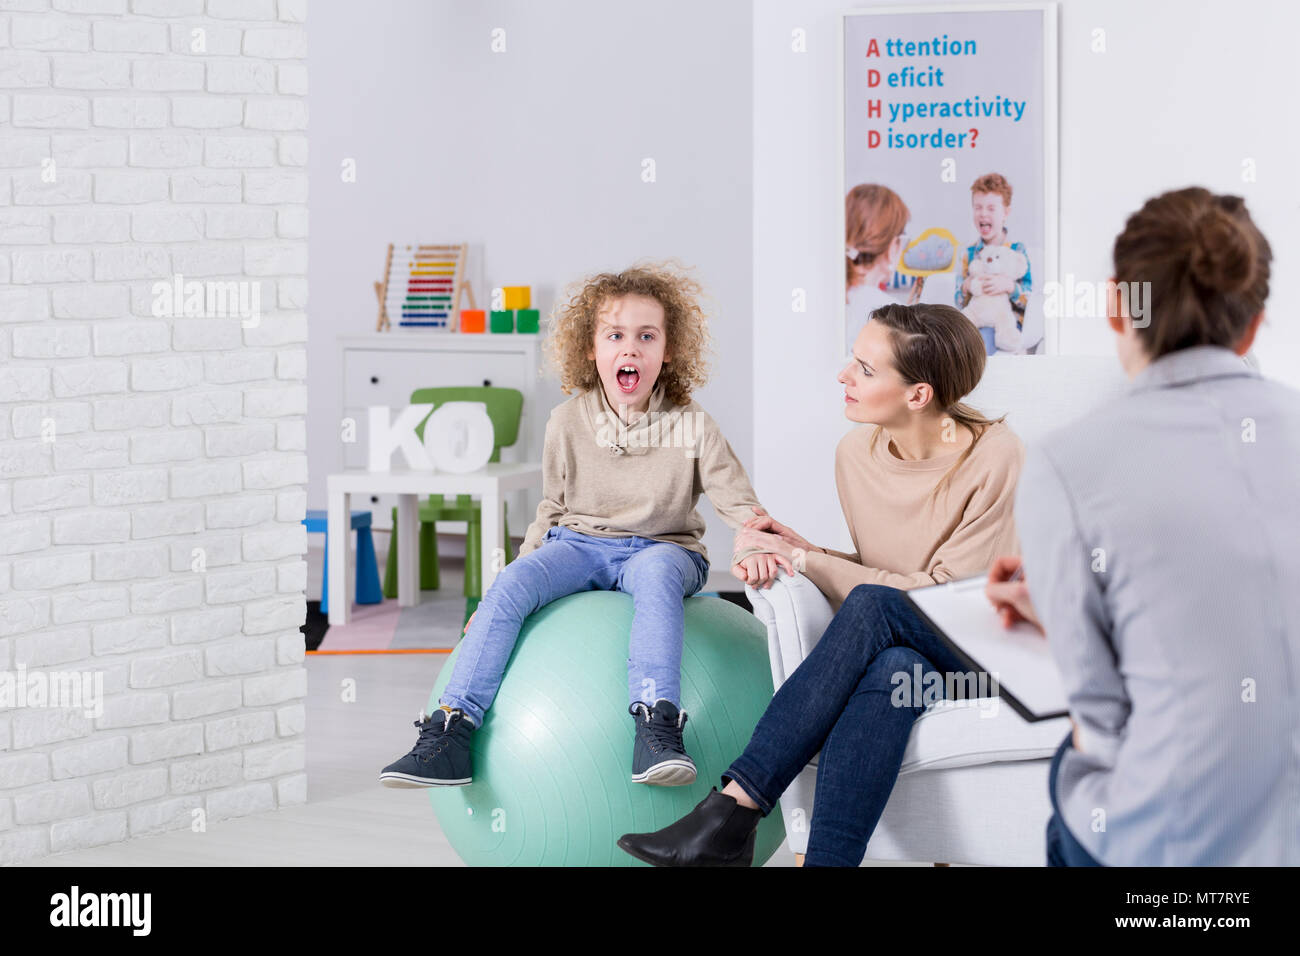 Mother and her child with ADHD during therapy - Stock Image